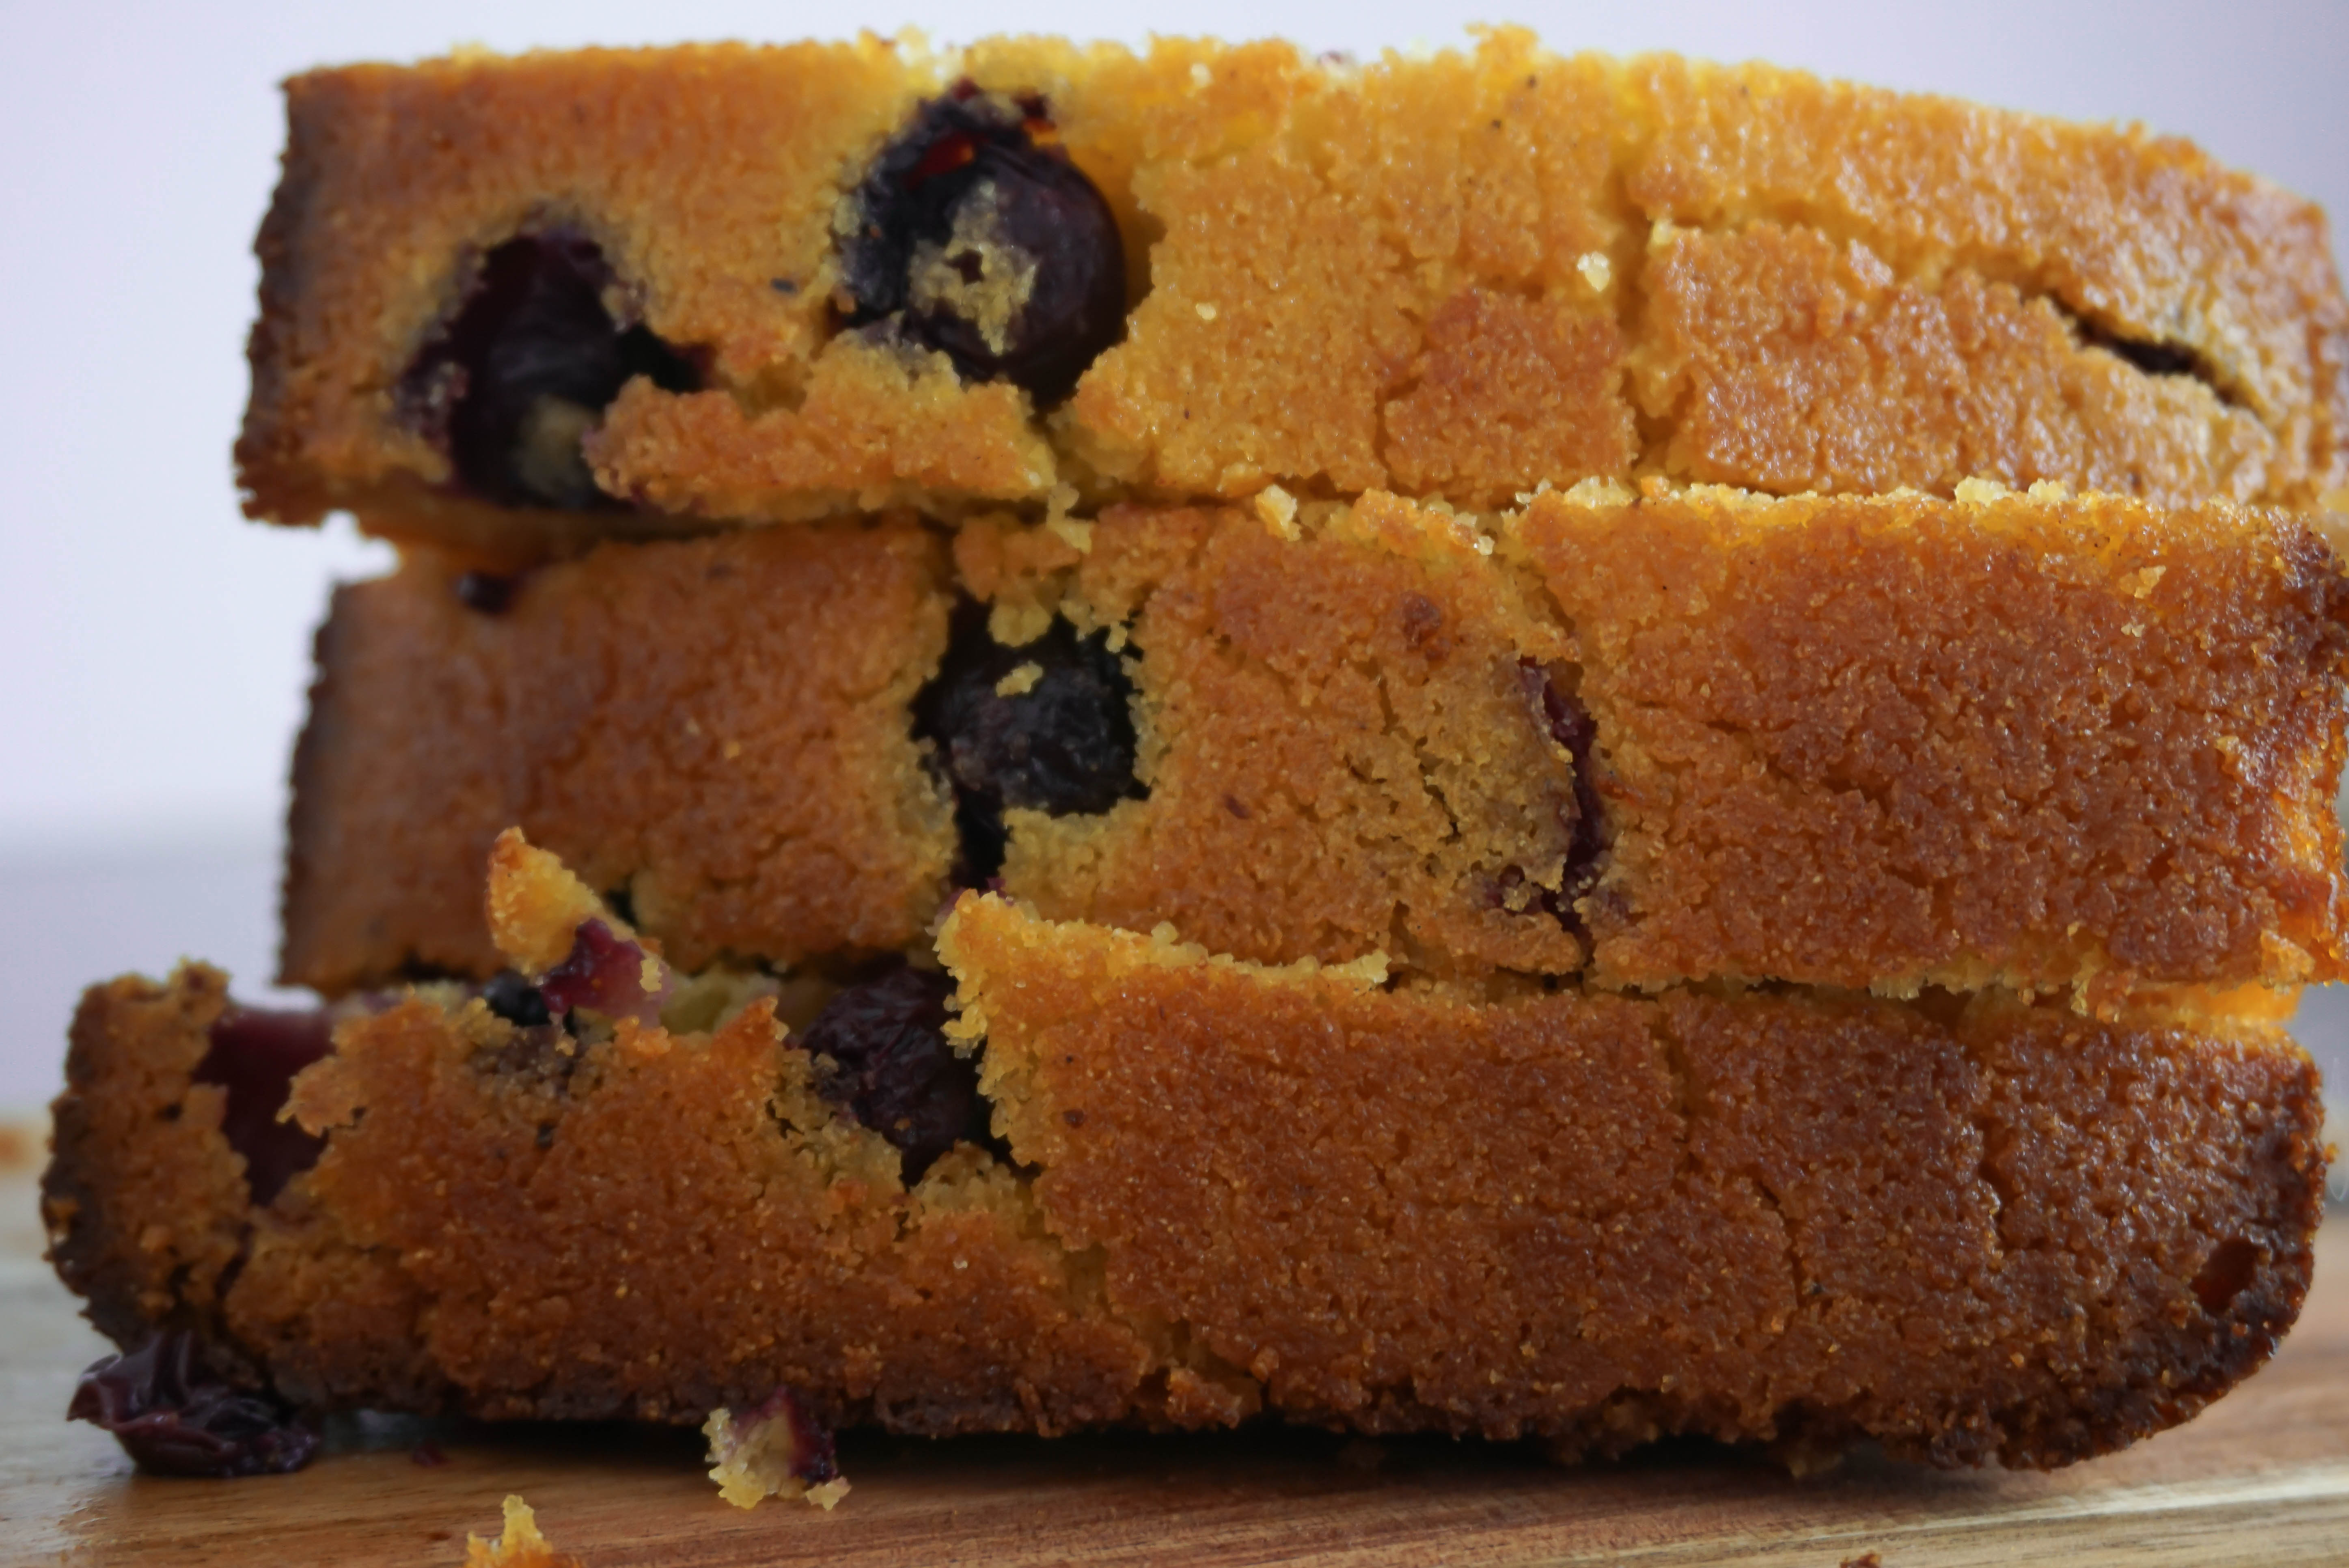 Three slices of lemon blueberry polenta bread